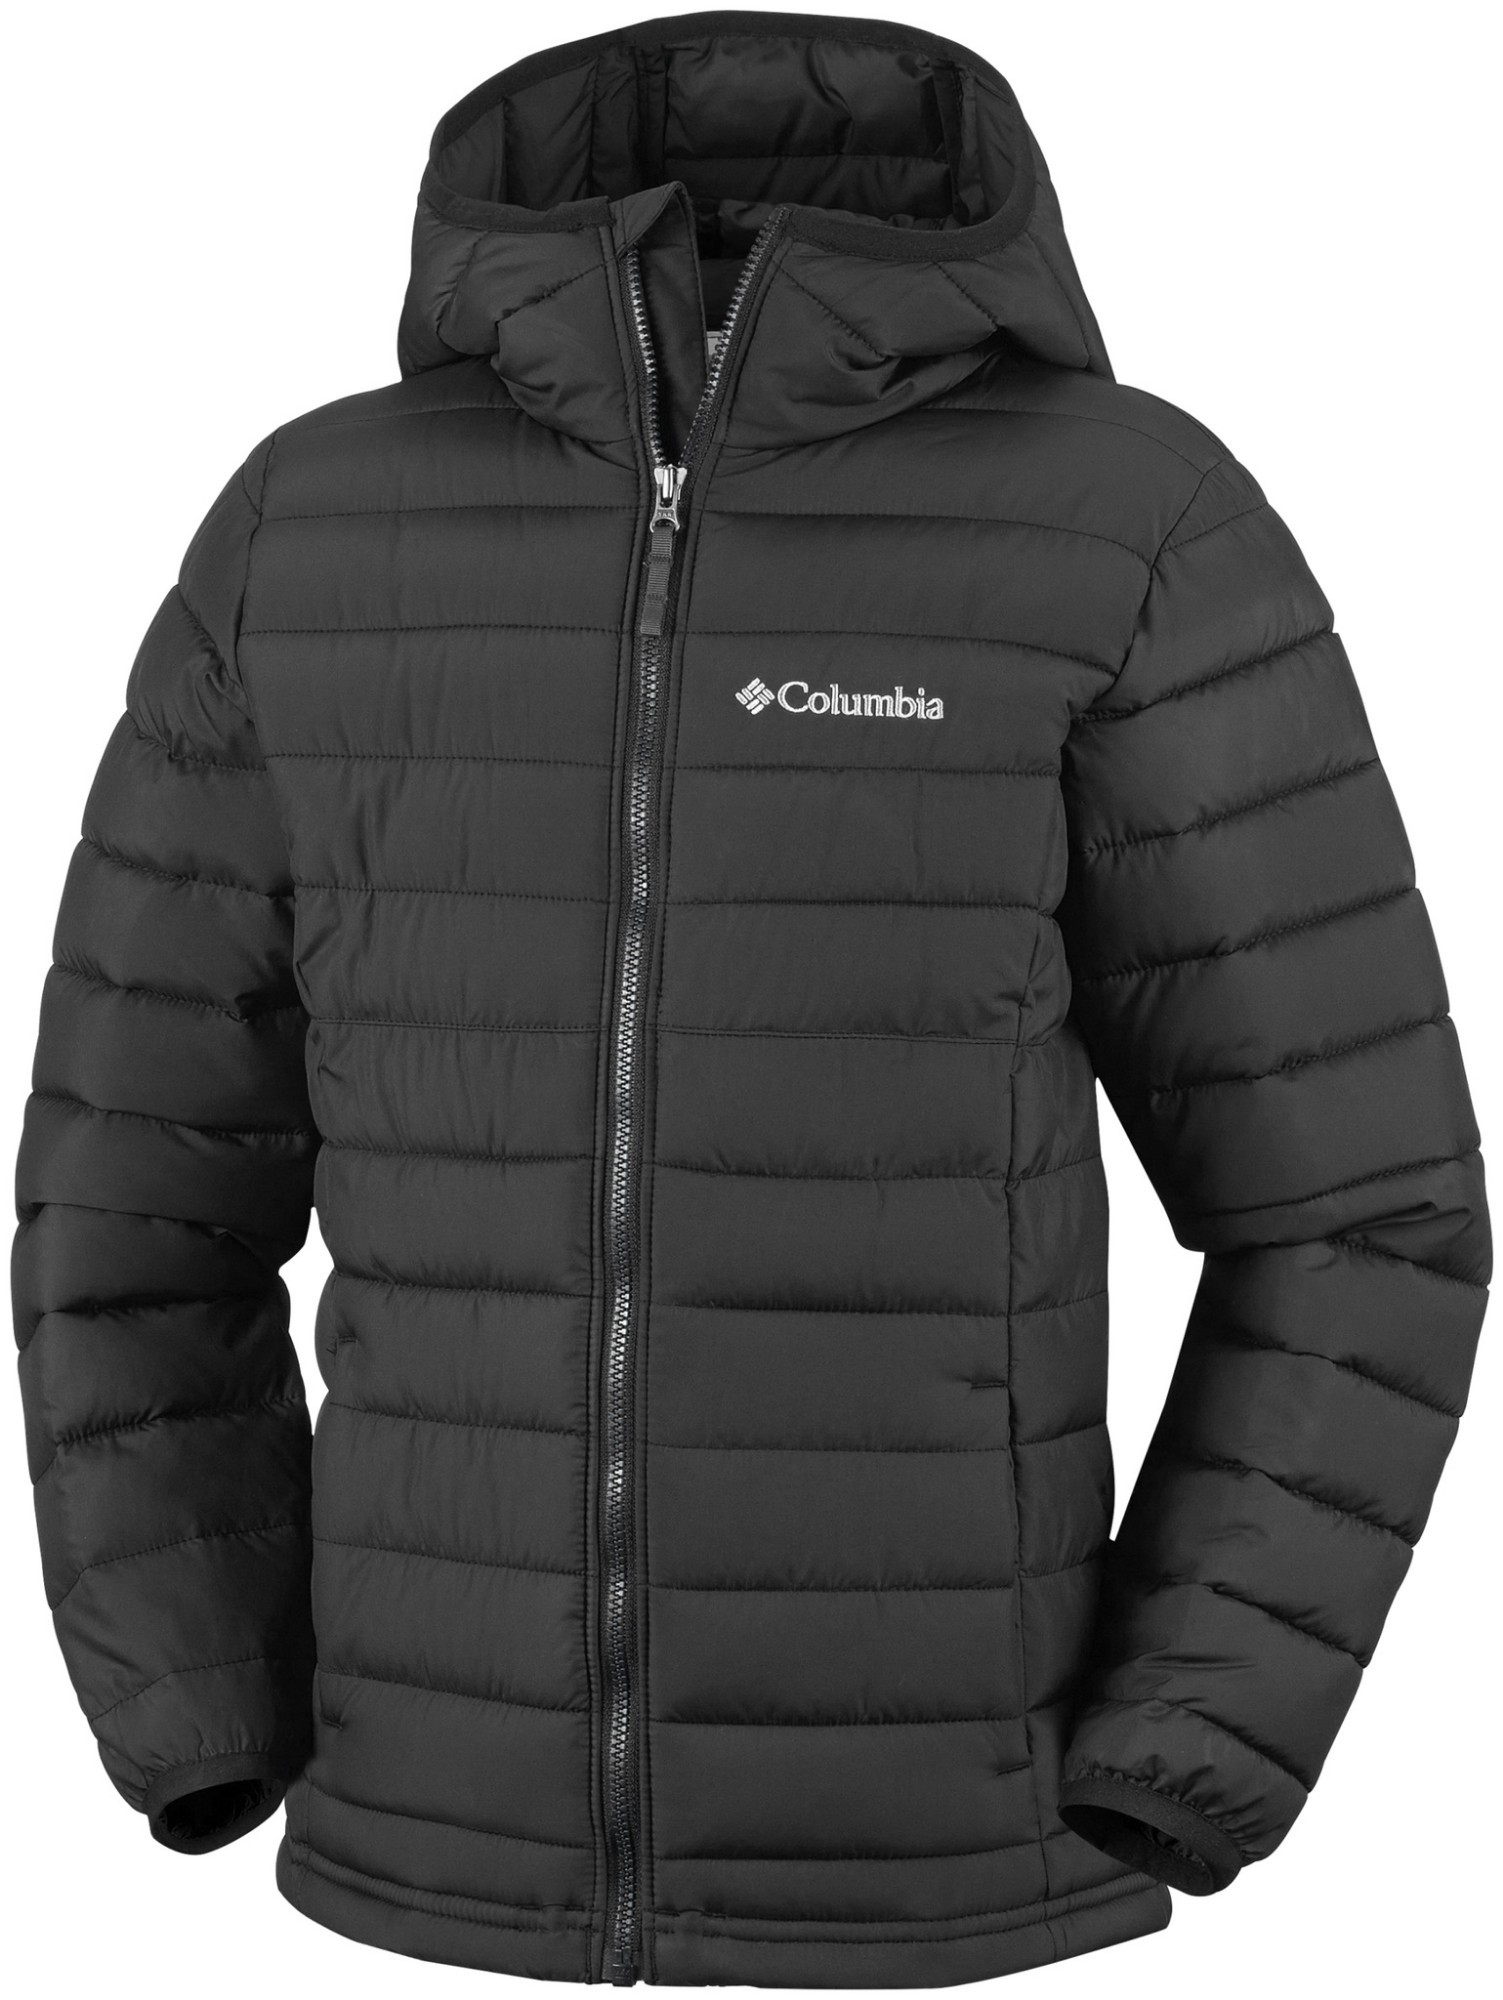 Columbia Powder Lite Boys Hooded Jacket Black 152